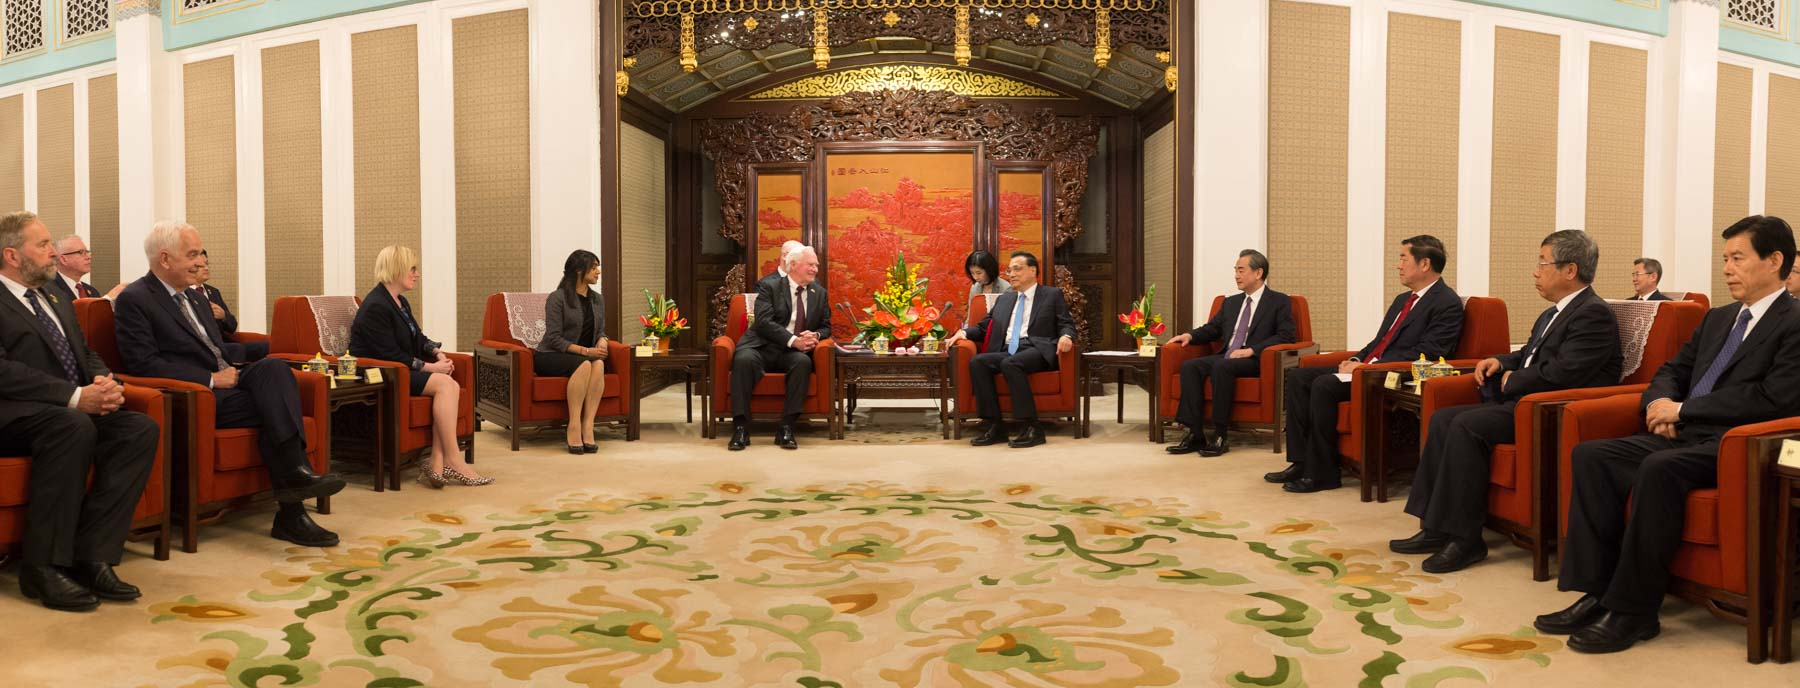 Members of the Canadian delegation and representatives of the Beijing government joined them for the meeting.